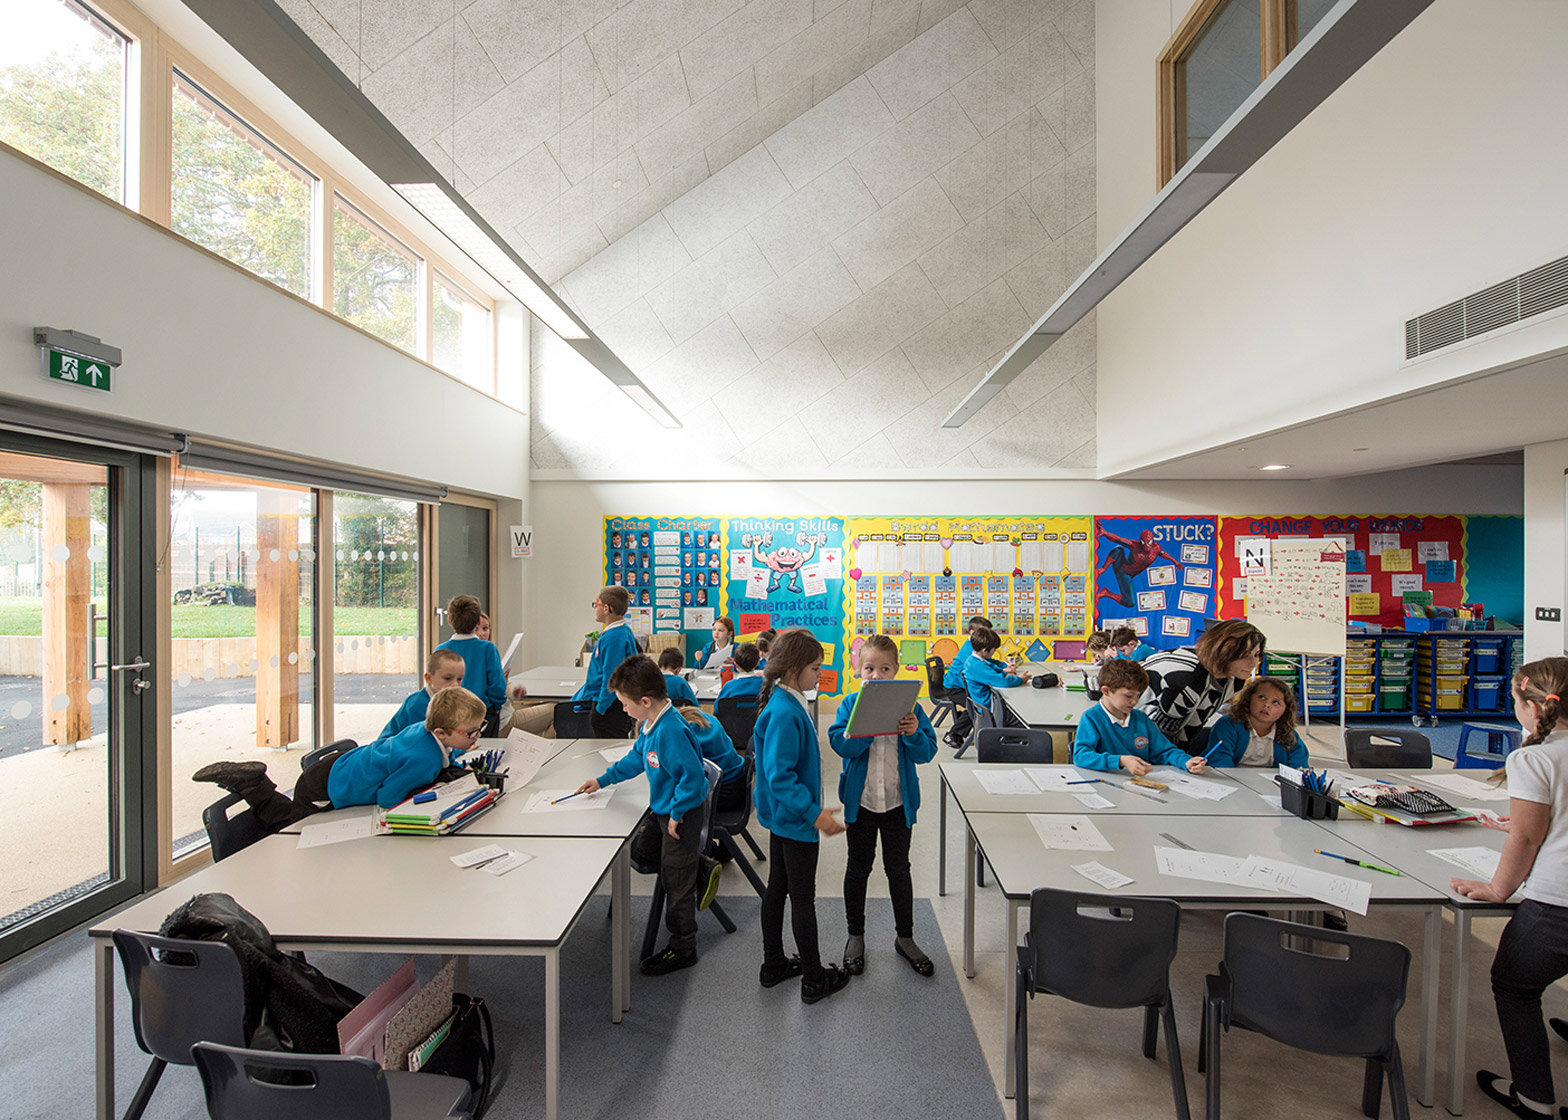 Riba says poor school design is wasting £150 million a year